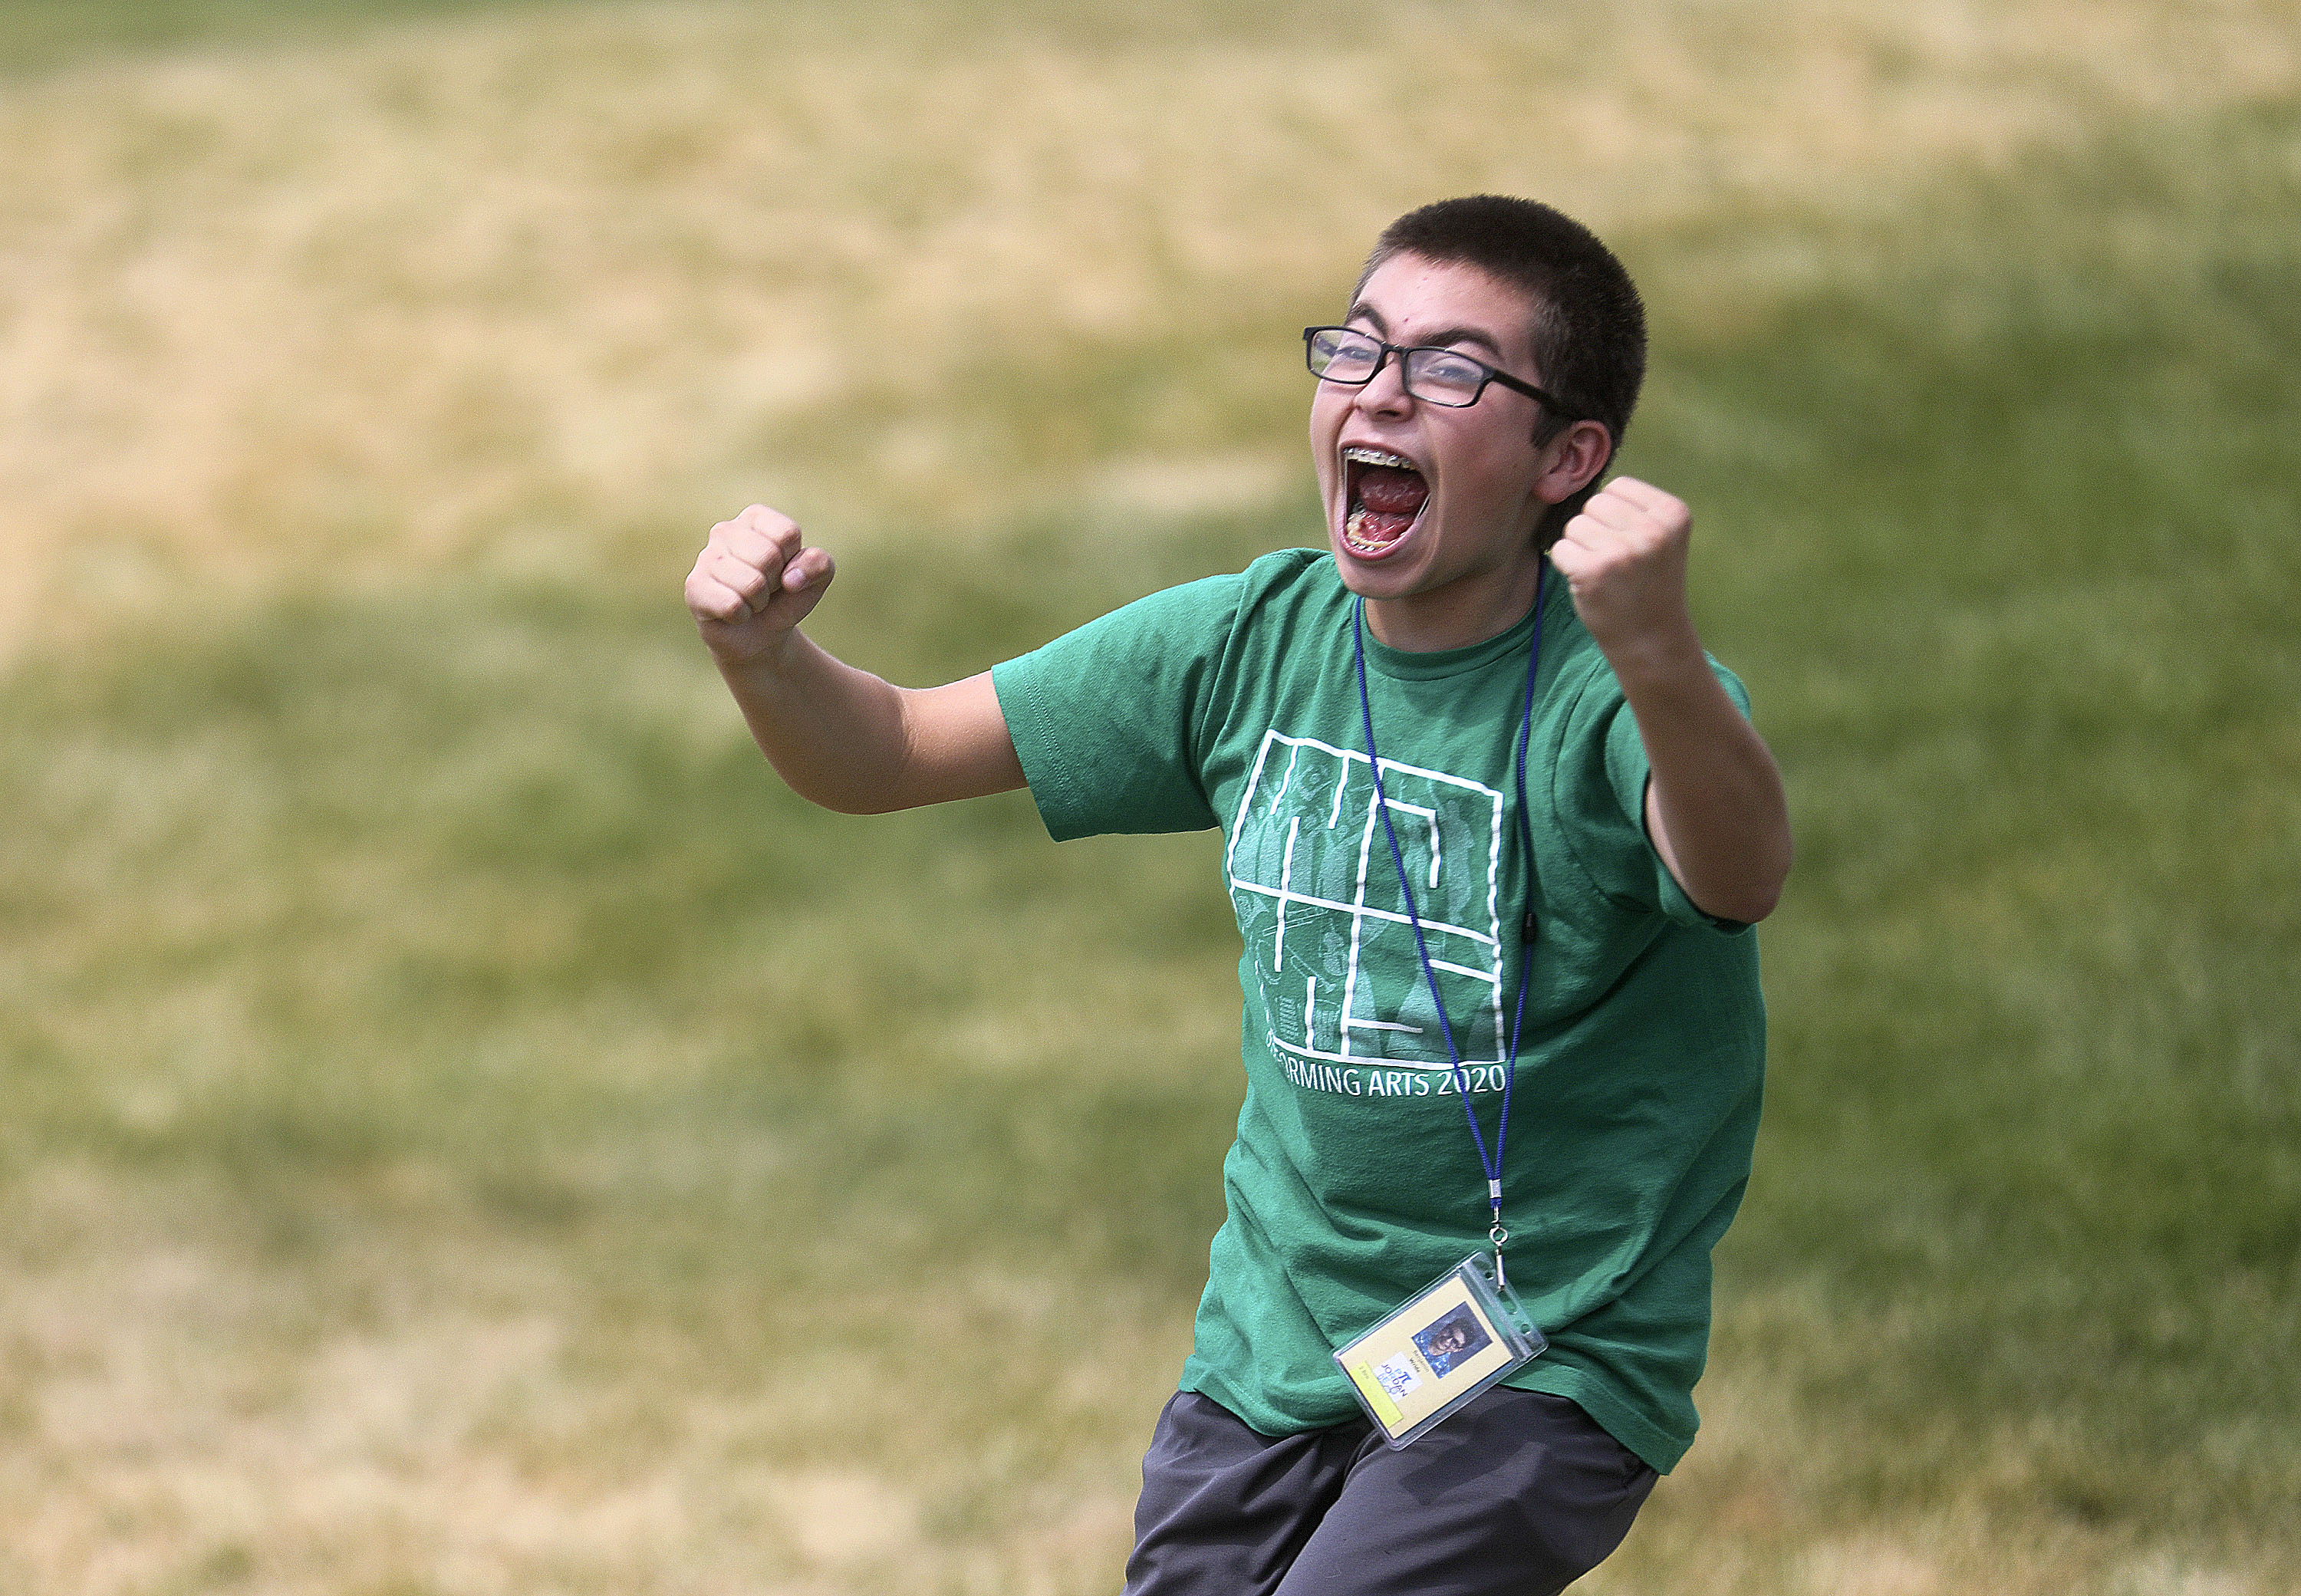 Benjamin Wride cheers as his friend's homemade rocket launches fair distance as students in a Prefreshman Engineering Program test their creations outside of Joel P. Jensen Middle School in West Jordan on Thursday, July 22, 2021. The summer enrichment program aims to introduce students to careers in STEM-related fields.